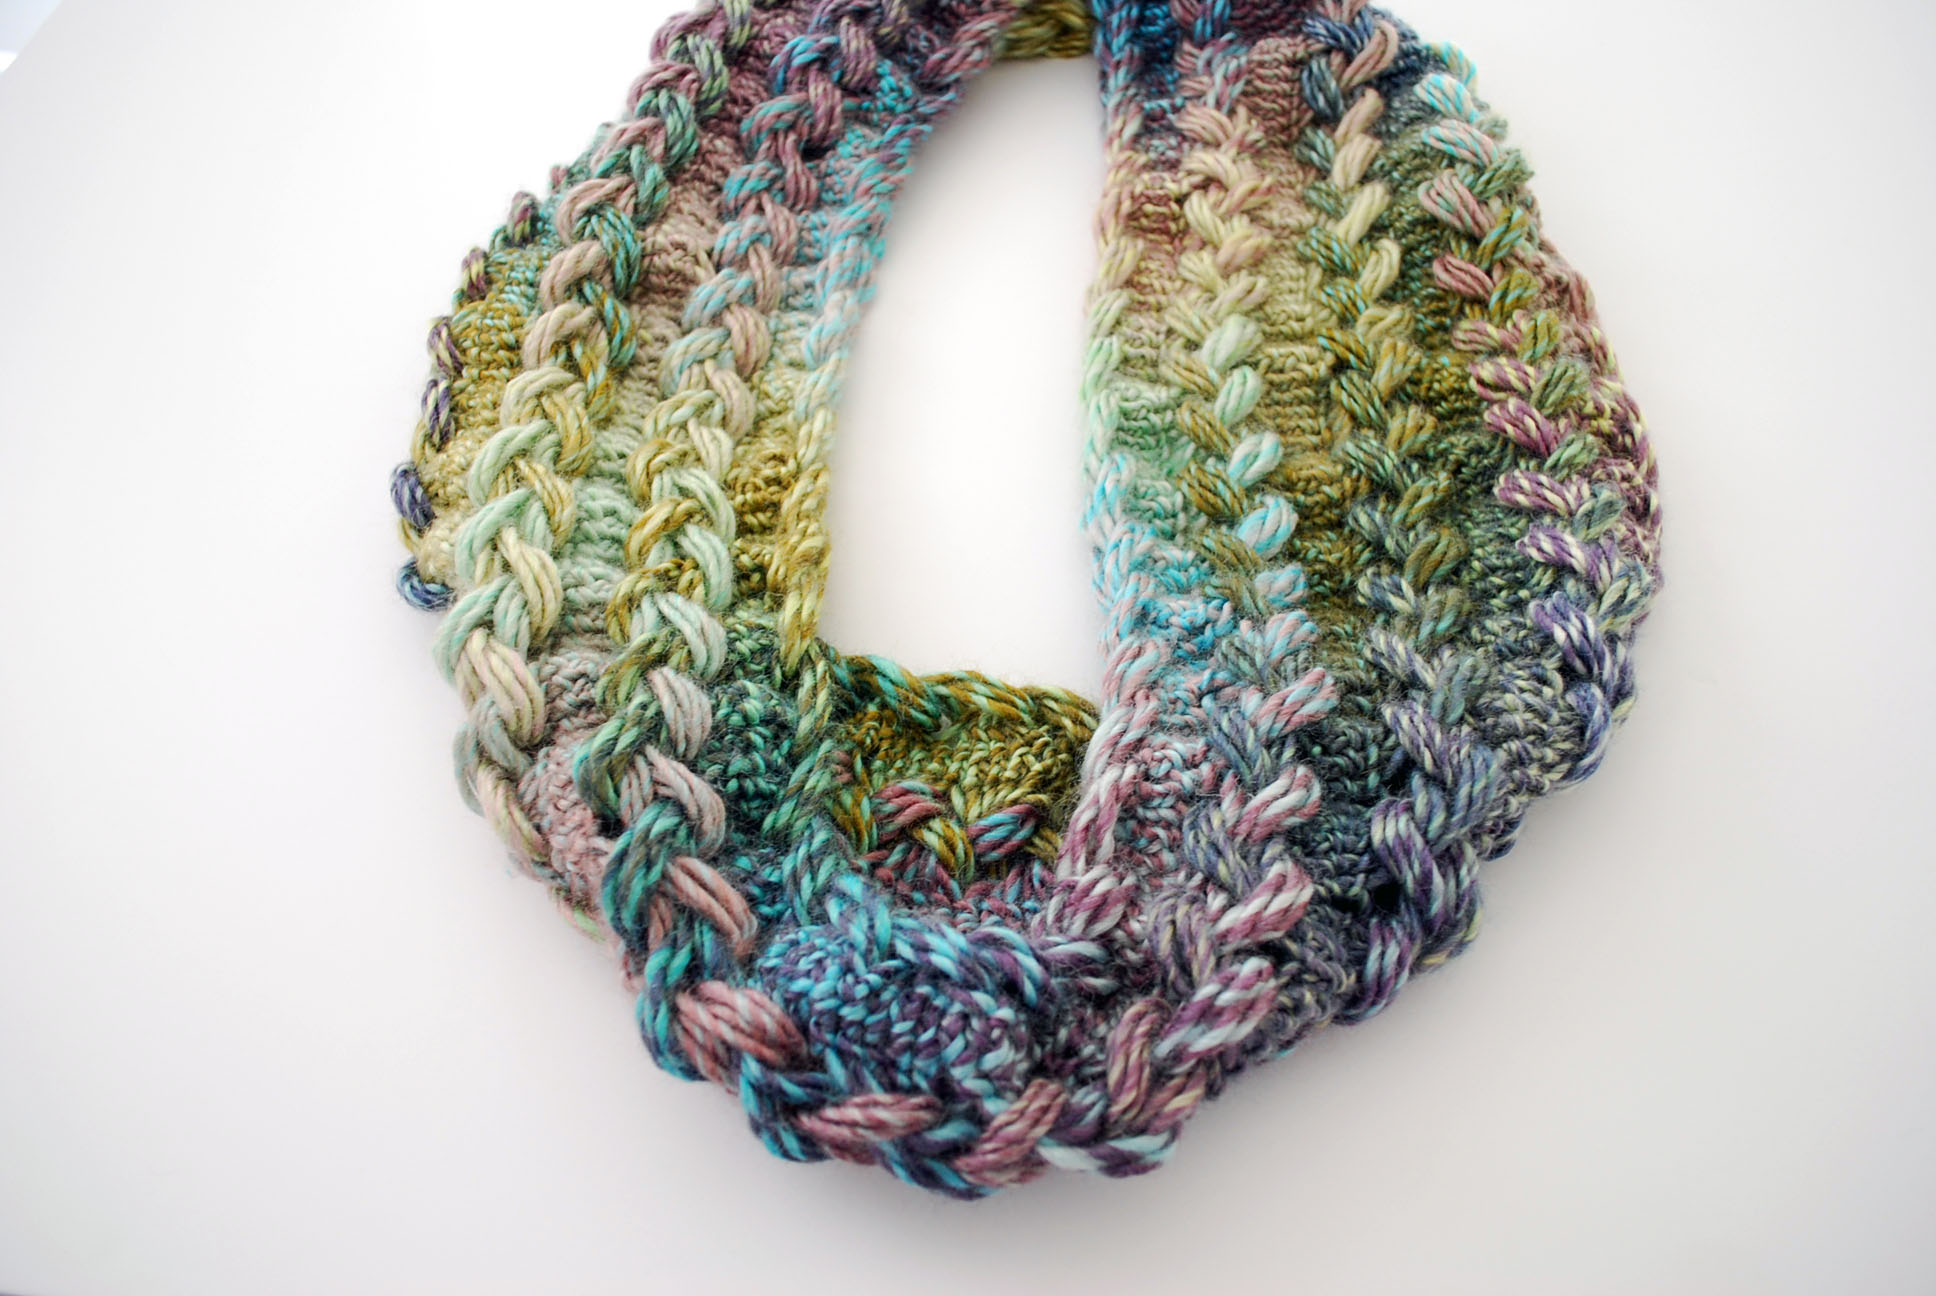 Crochet Patterns Video Tutorial : Hairpin Lace Infinity Scarf: Free Crochet Pattern and Video Tutorial